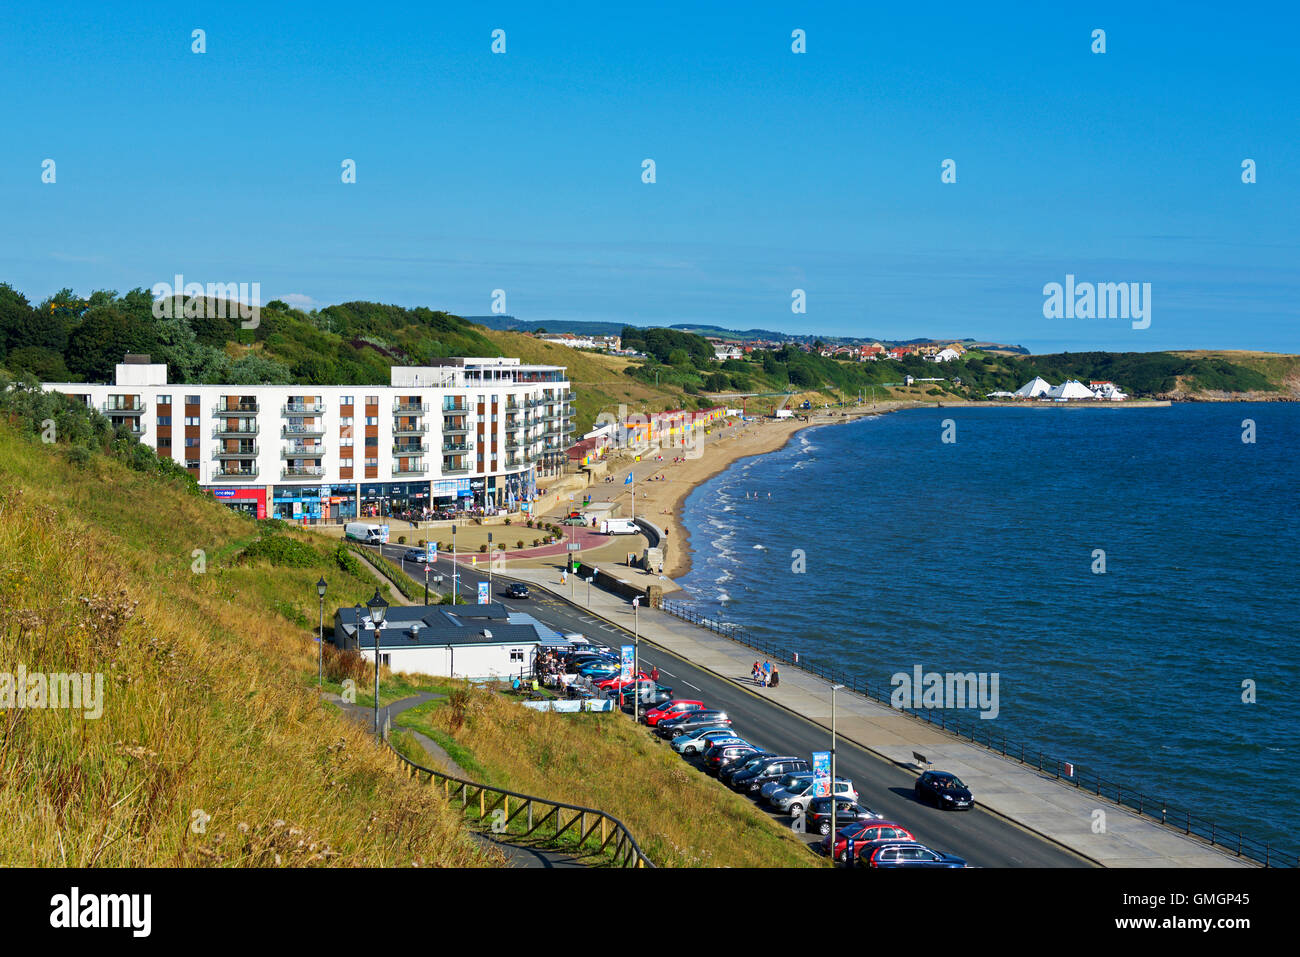 North Bay, Scarborough, North Yorkshire, England UK - Stock Image